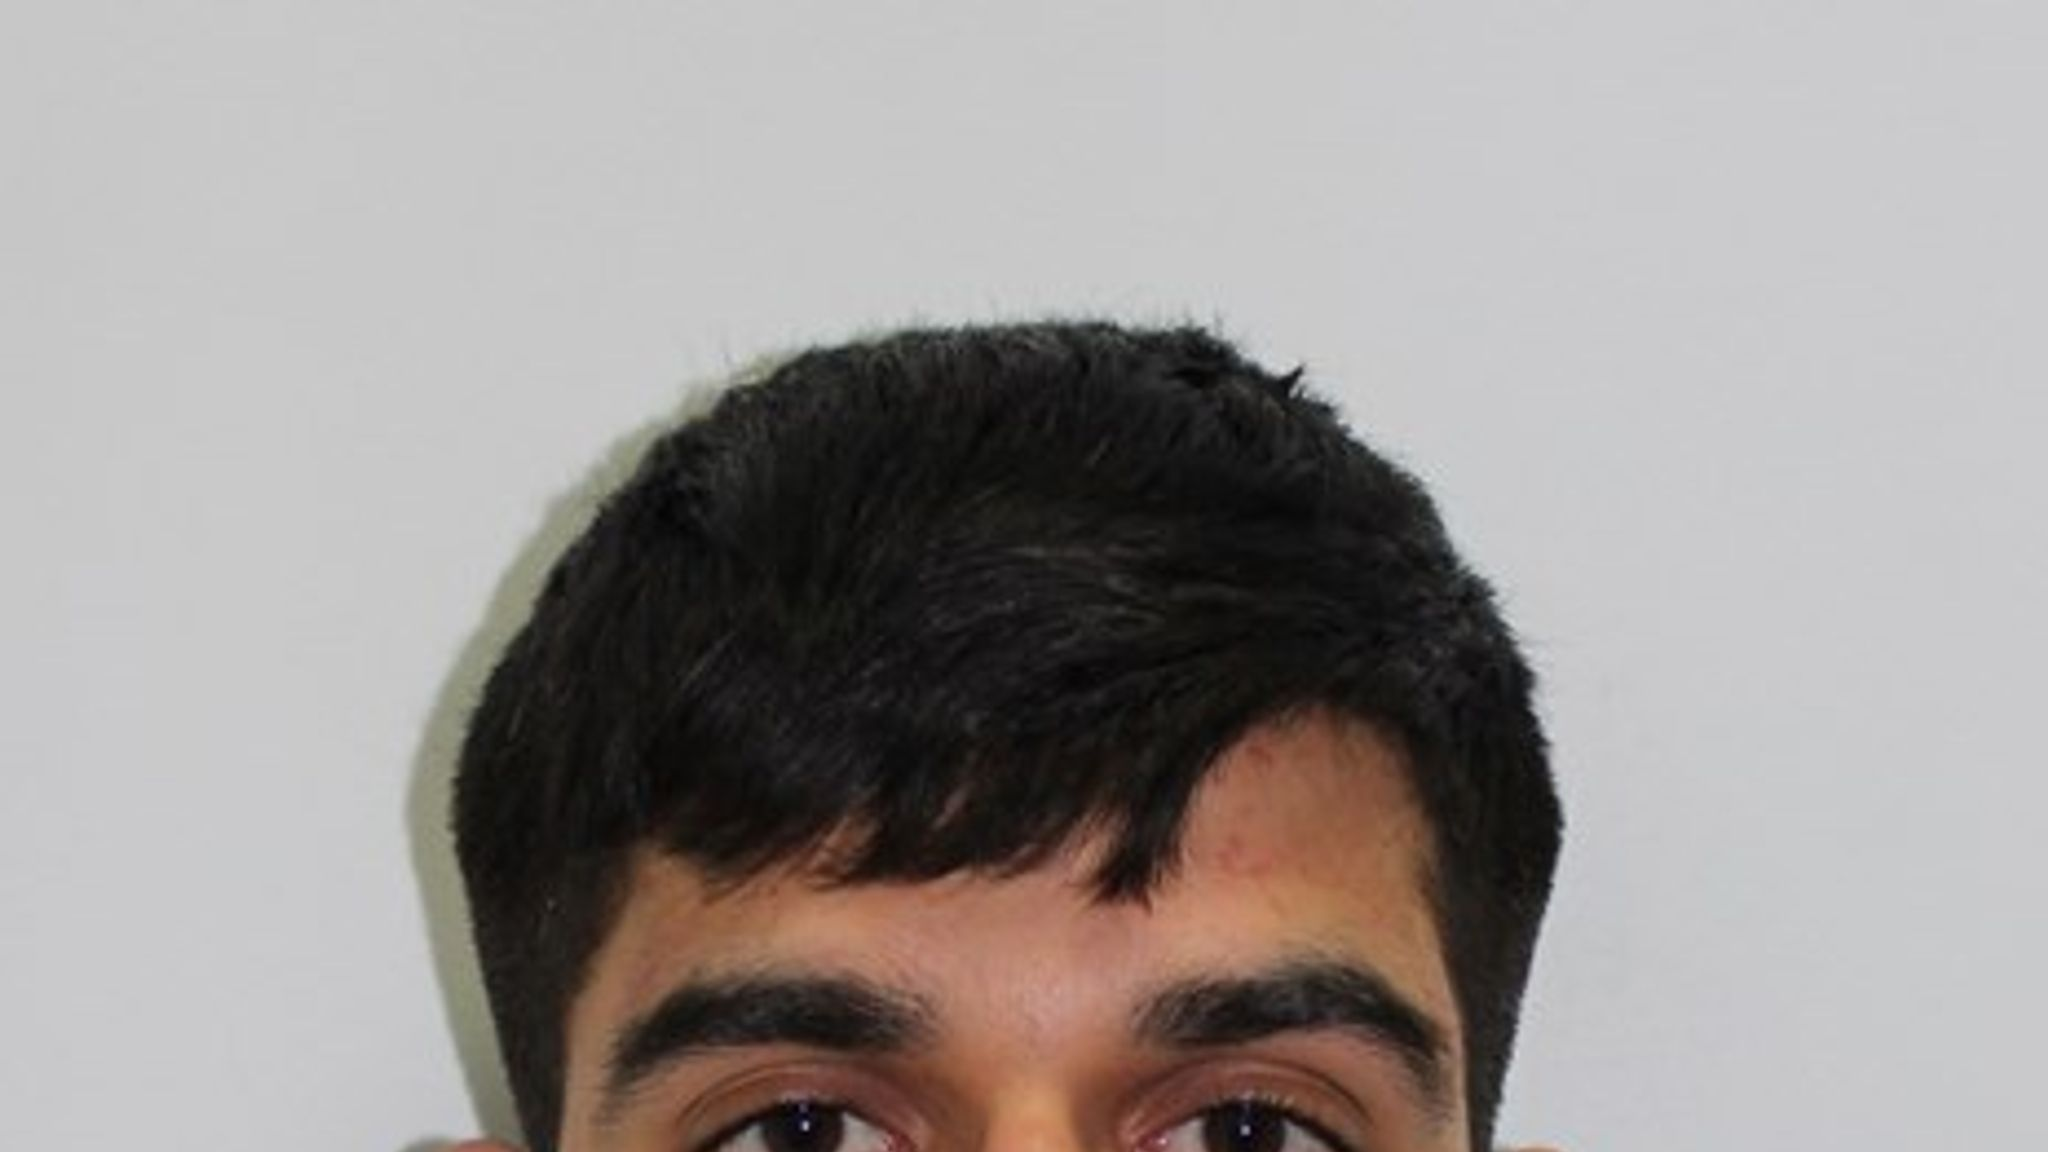 Zain Qaiser: Hacker who blackmailed porn viewers is told to sell Rolex and repay £270k